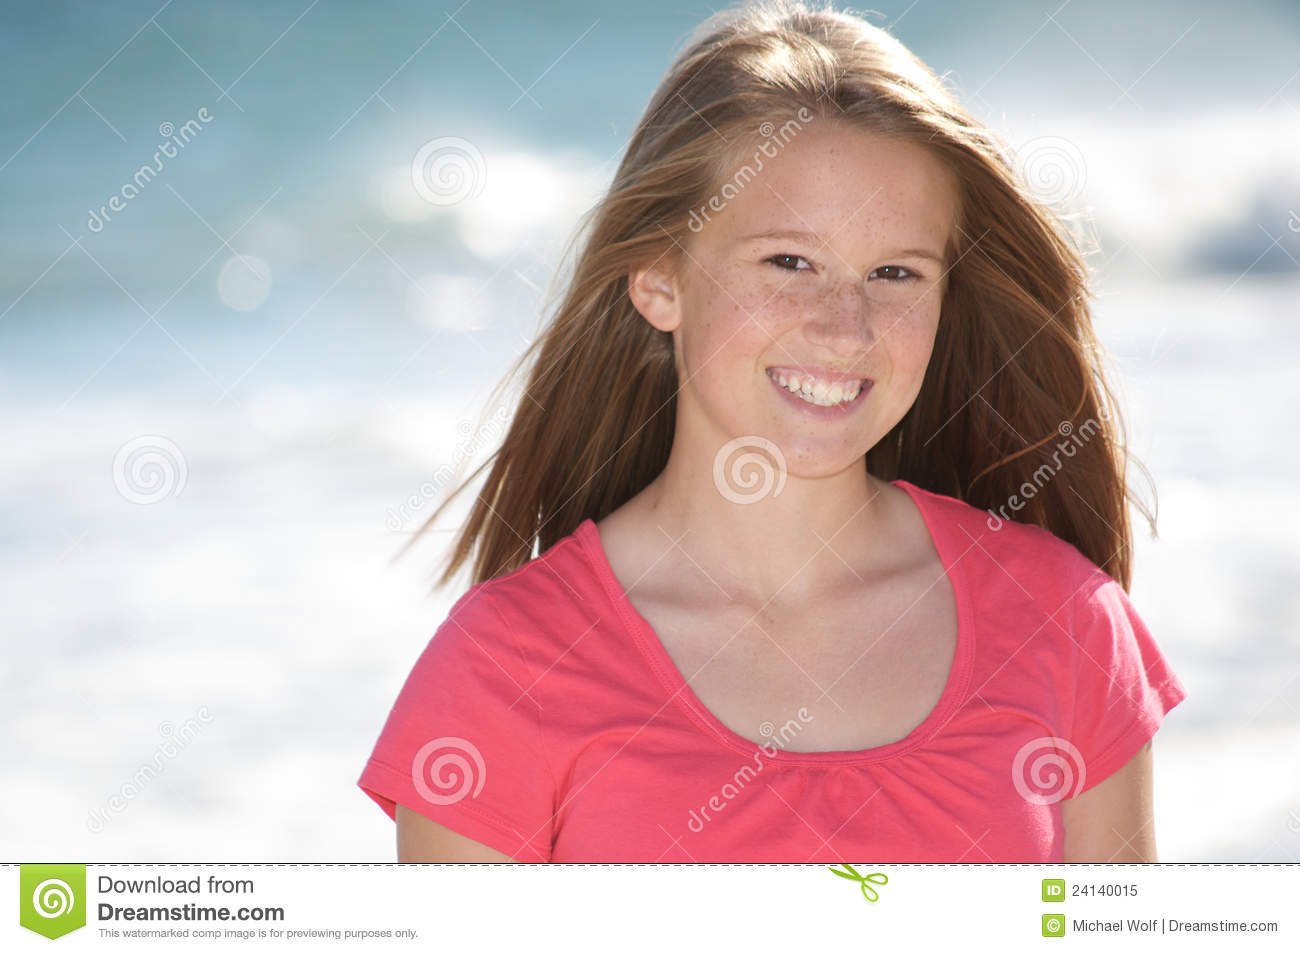 Petty wholesome teen girl royalty free stock photo image 24140015 - Image of teen ...